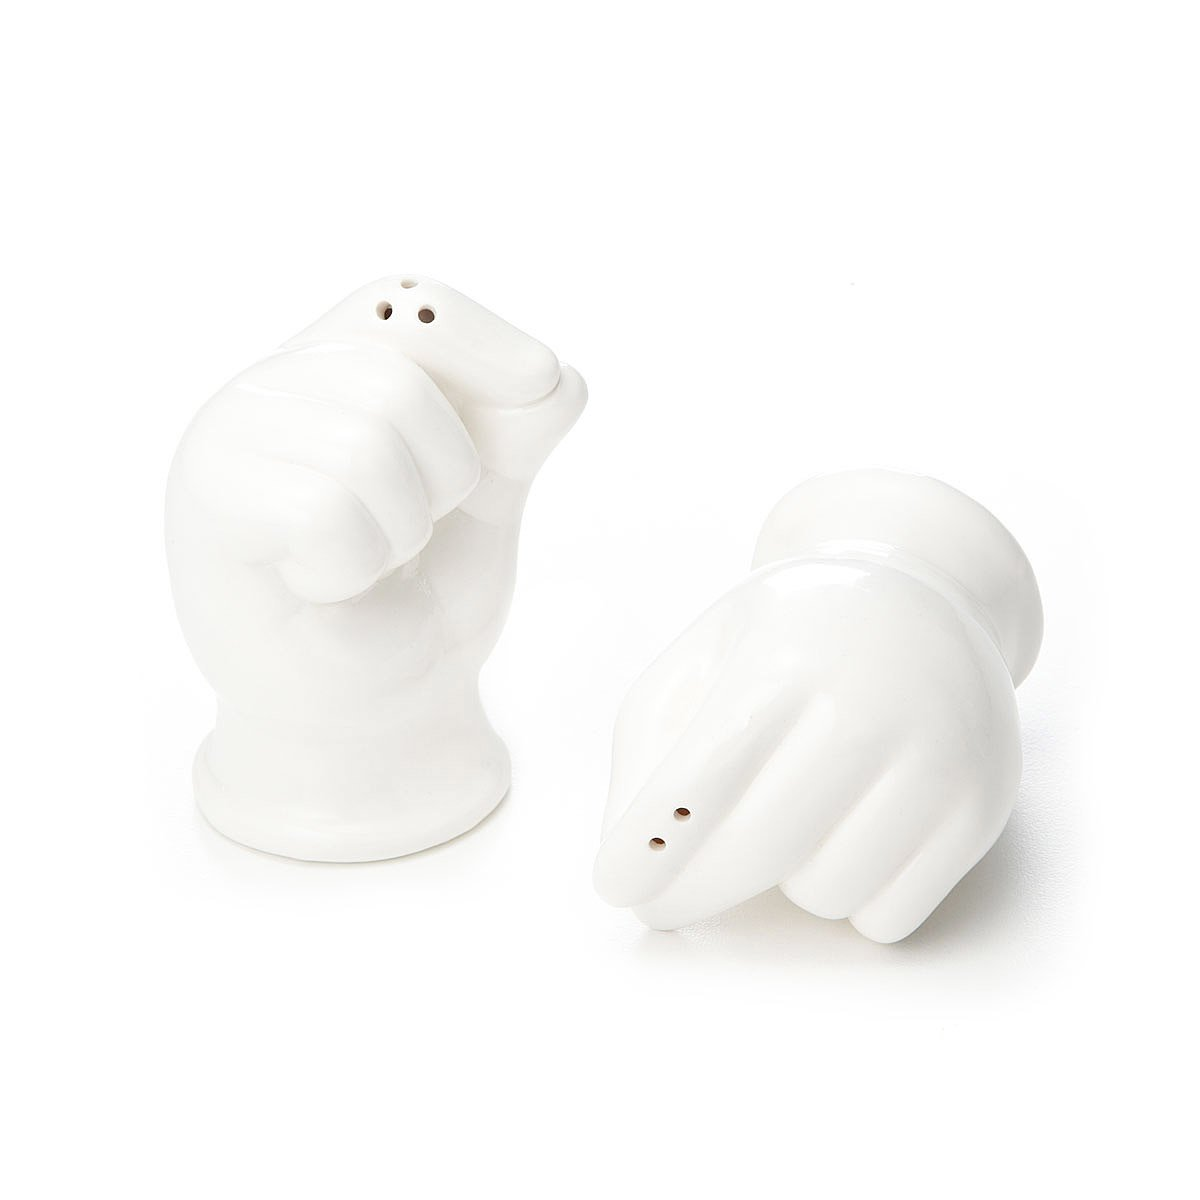 Pinch and Dash Salt and Pepper Shaker Set | unique salt and pepper shakers